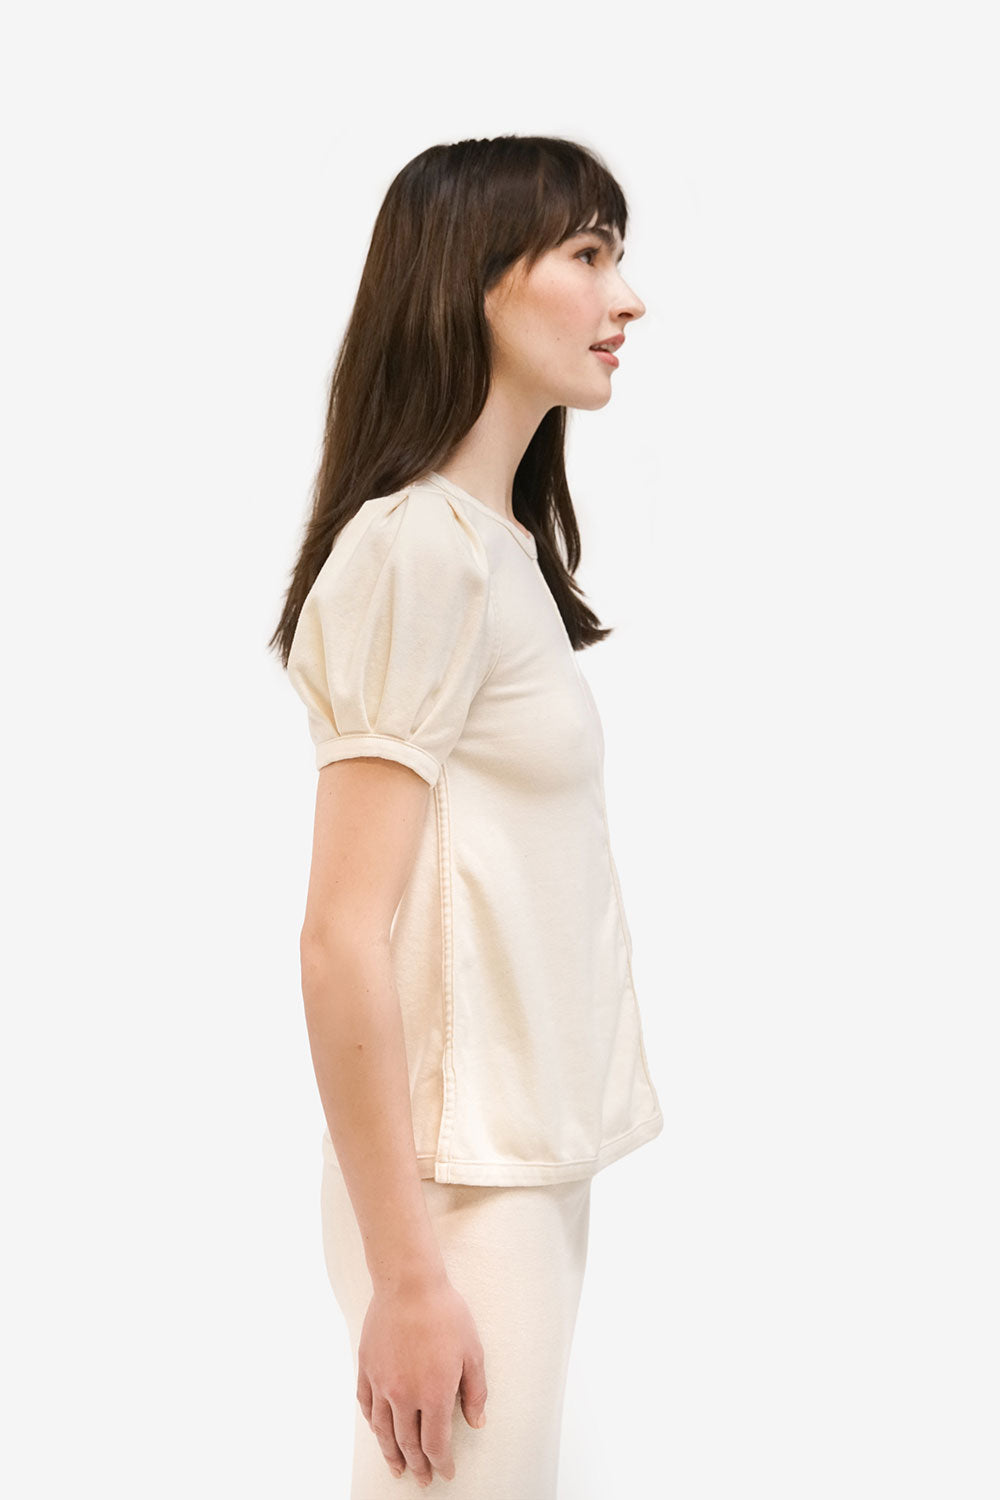 Alabama Chanin Fiona Top with Puckered Short Sleeve in Natural